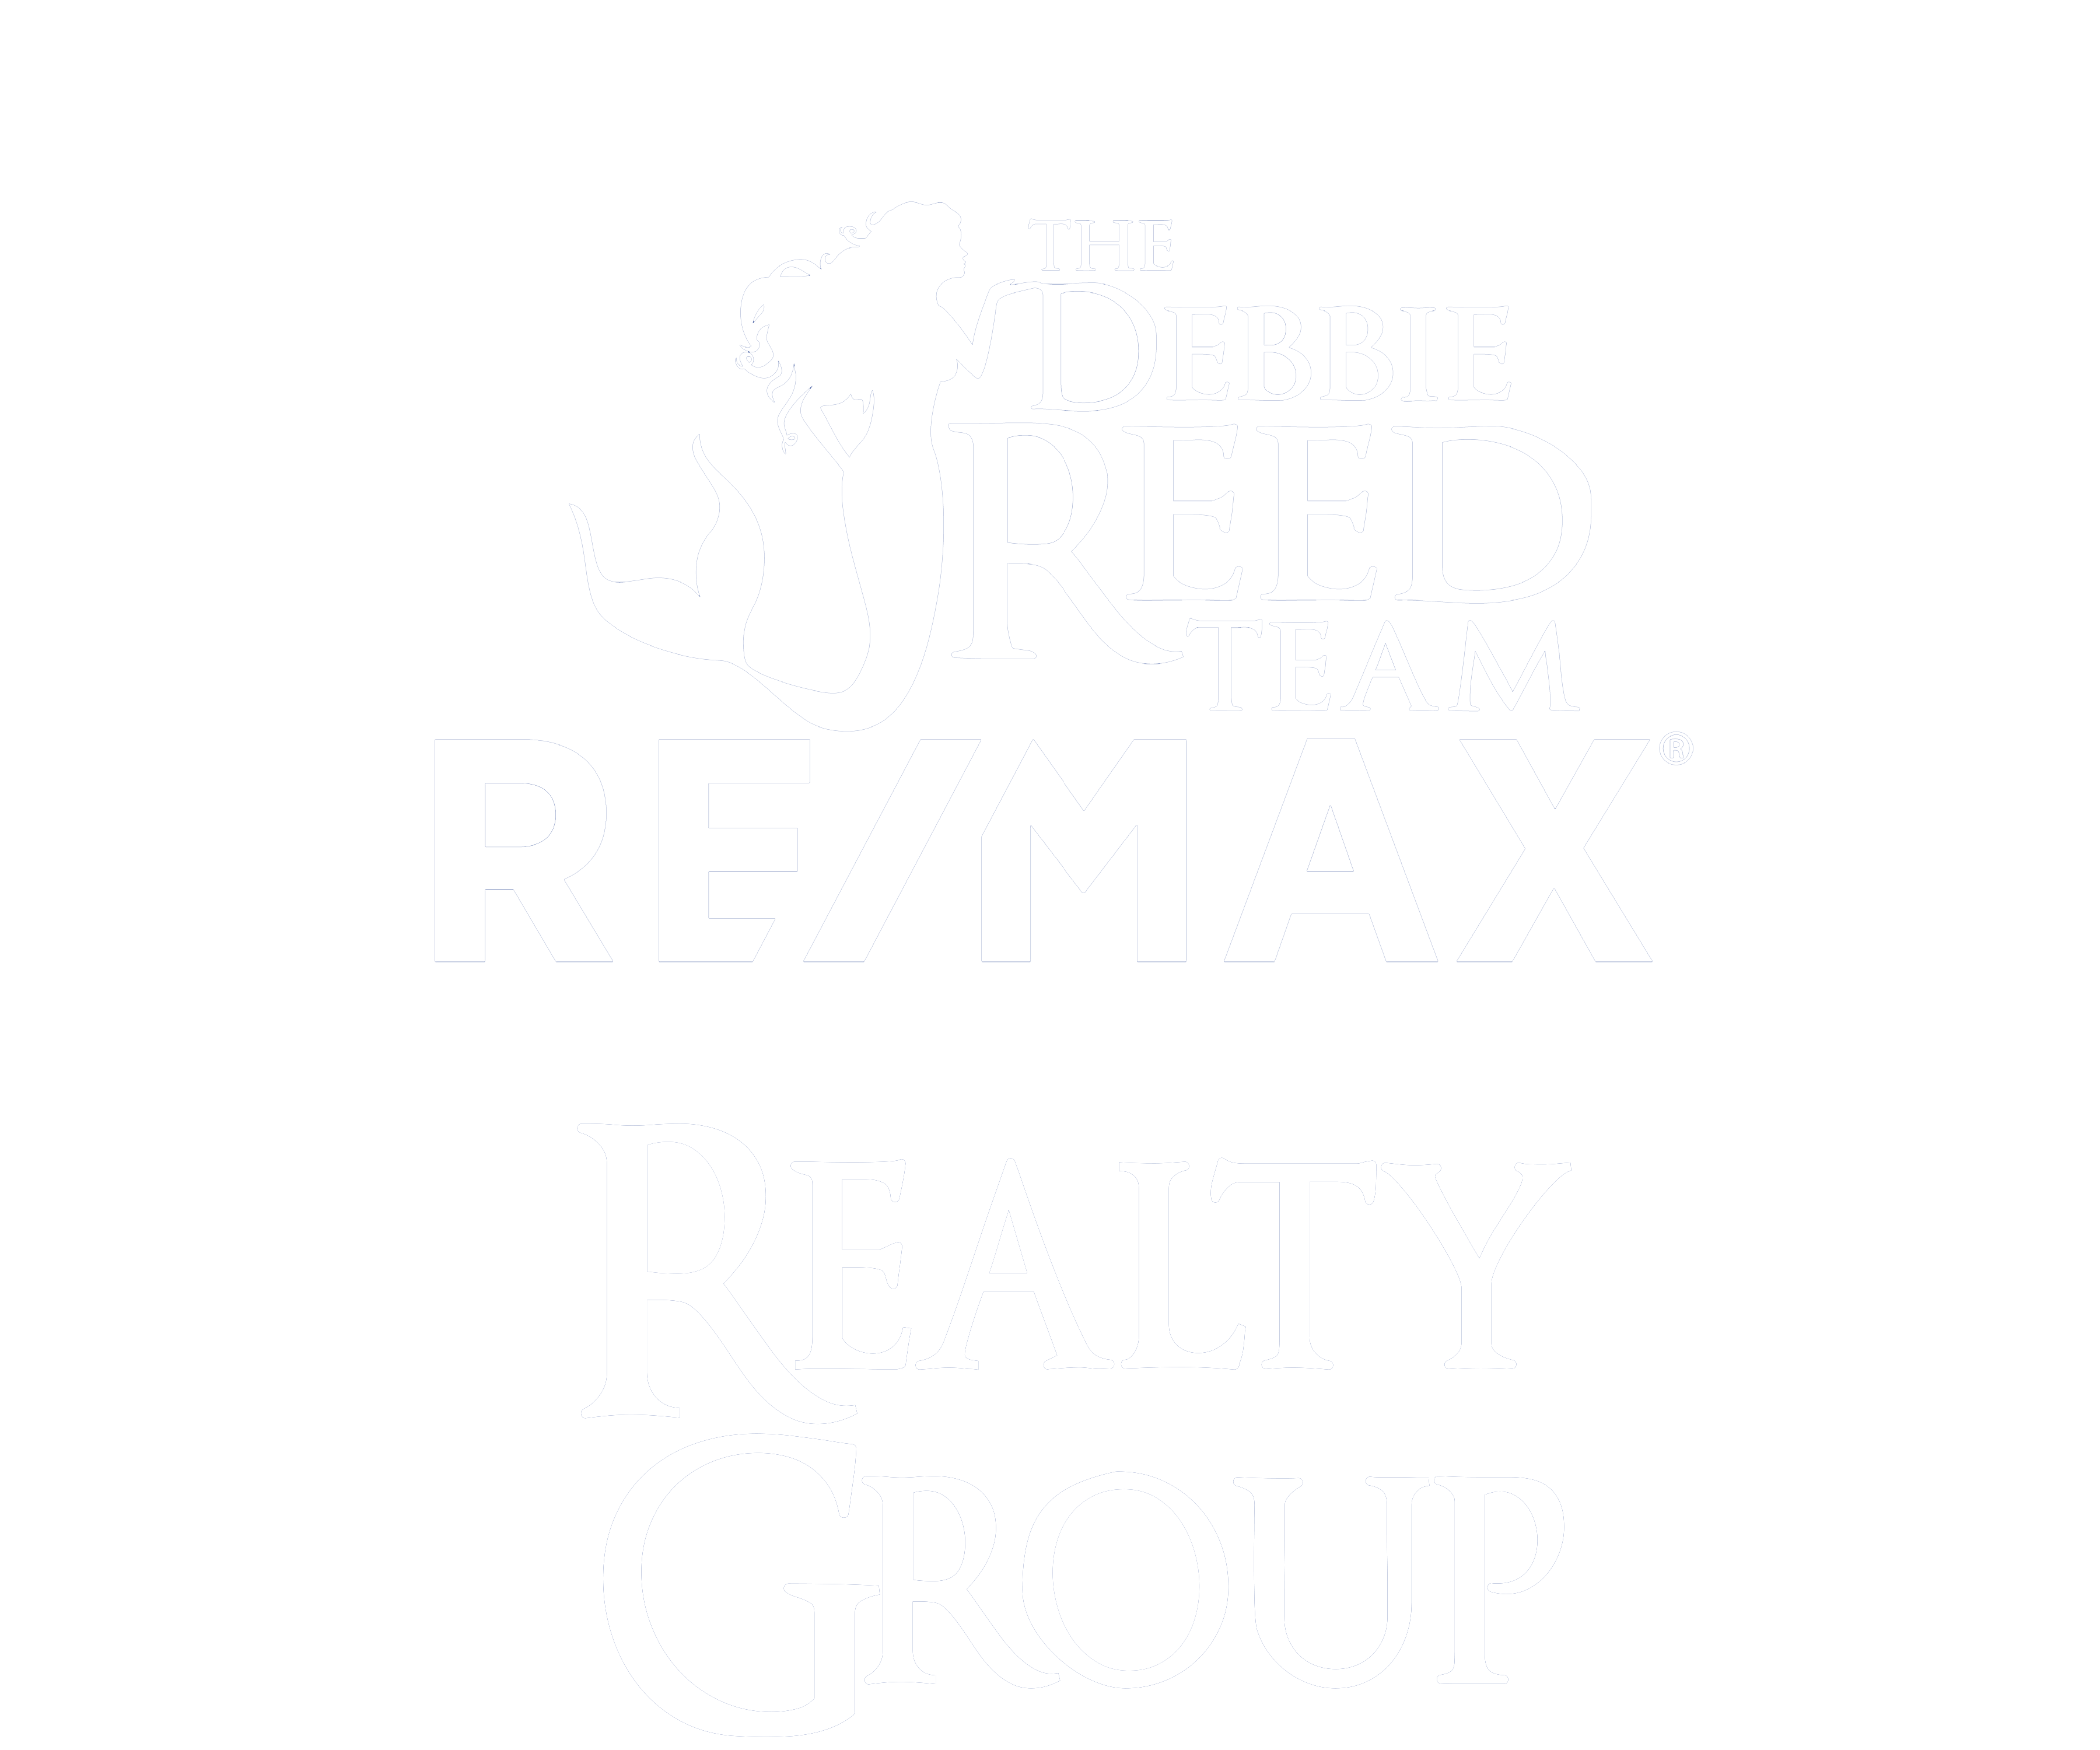 The Debbie Reed Team/REMAX Realty Group